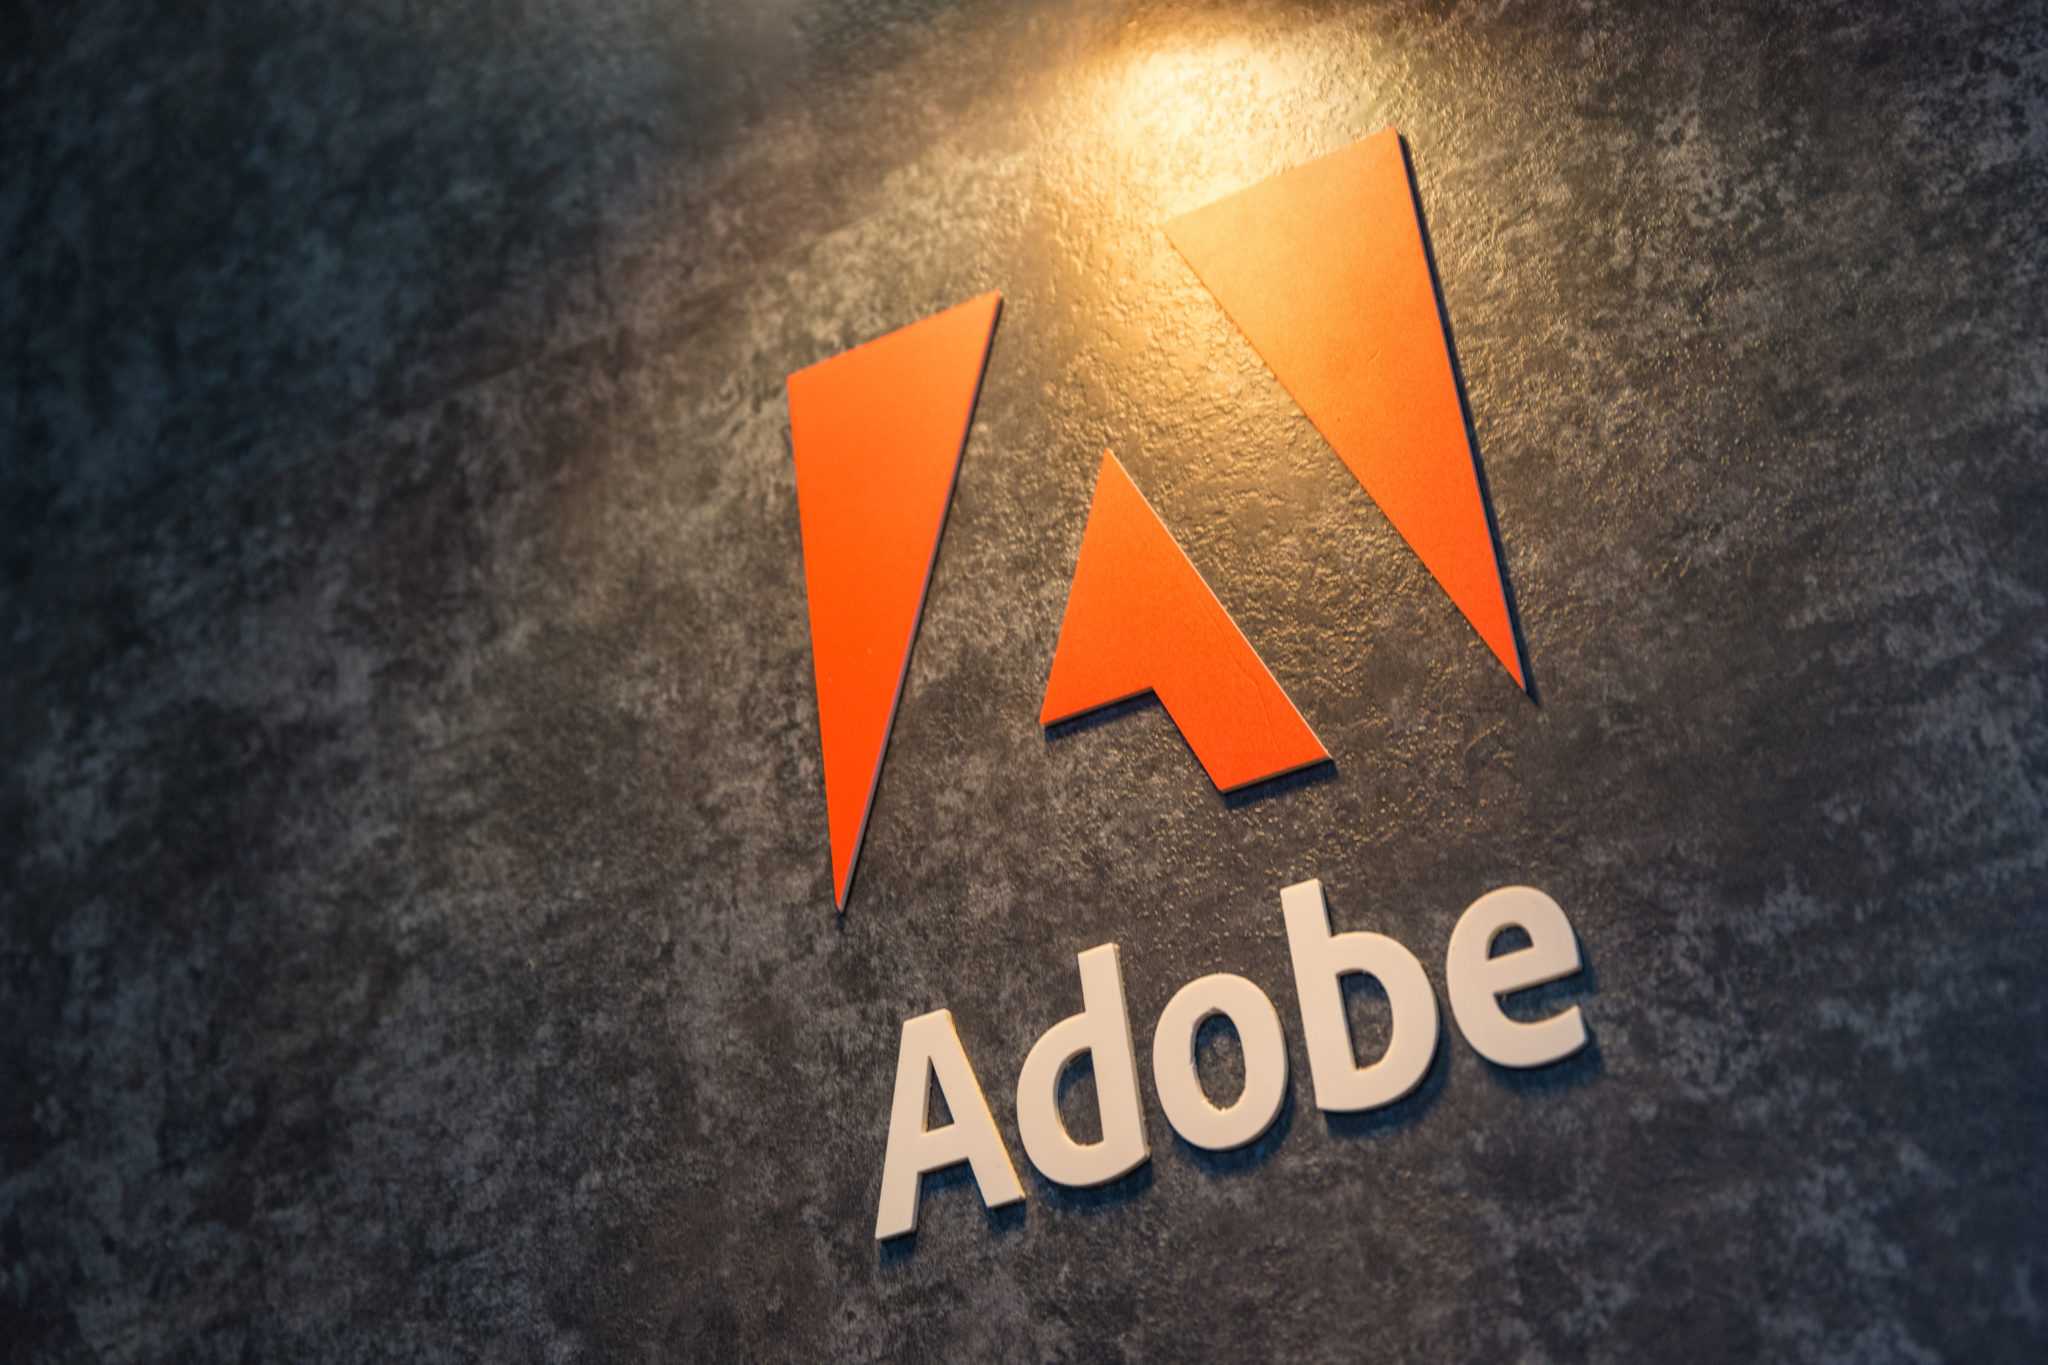 Adobe Looking To Develop A Tool That Recognizes Edited Images Through Machine Learning